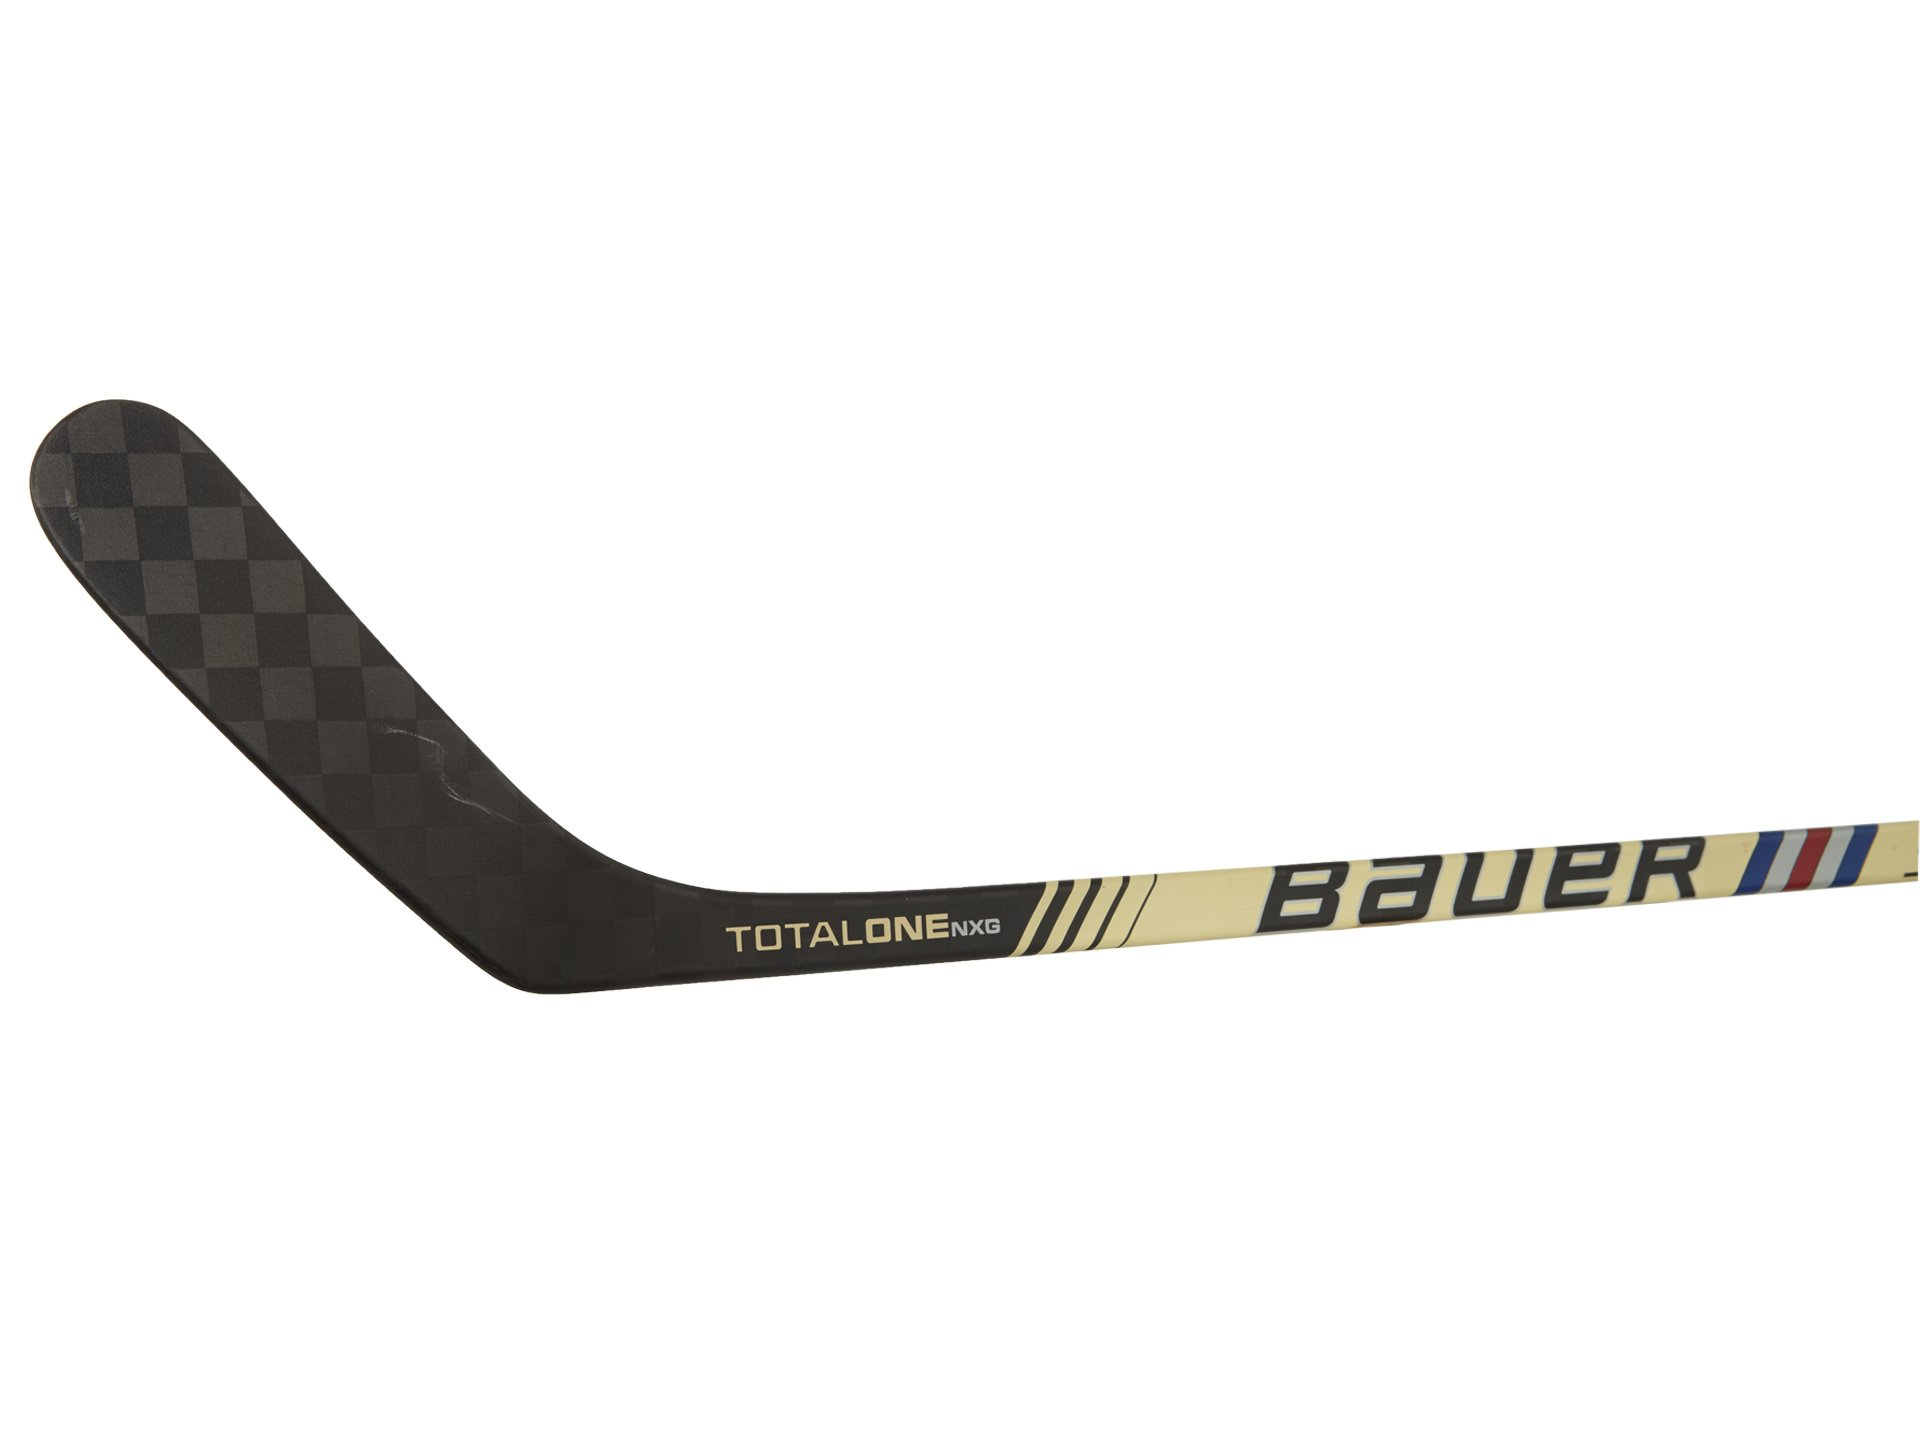 Bauer Supreme Total One Nxg Limited Edition 2 STK Sr 87 Composite Hockey Stick Unisex Style: 1044171 LFT-BRN/BGE Size: One Size for All